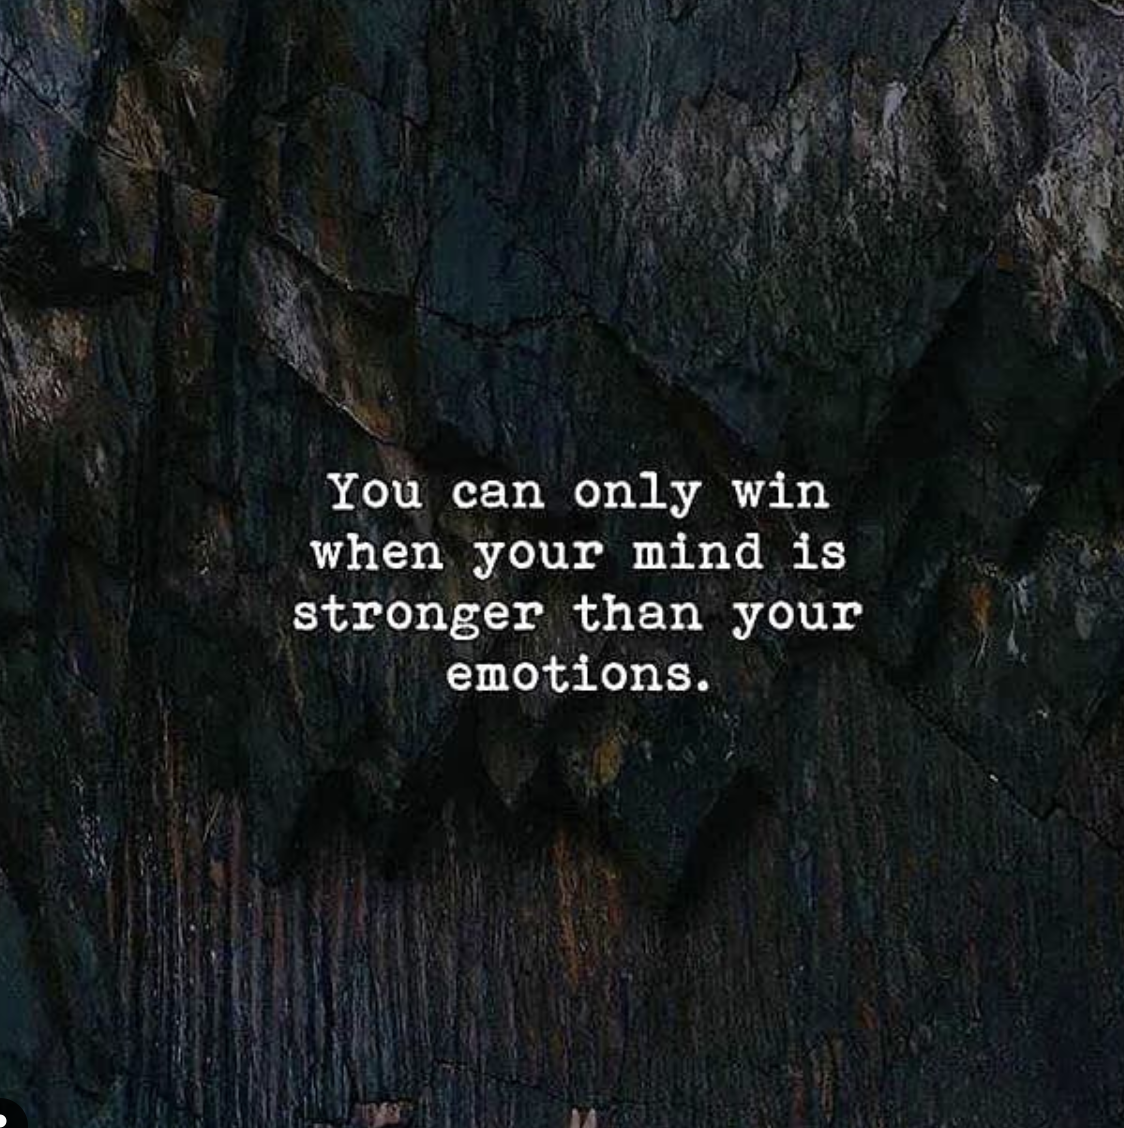 [Image] You can only win when your mind is stronger than your emotions.